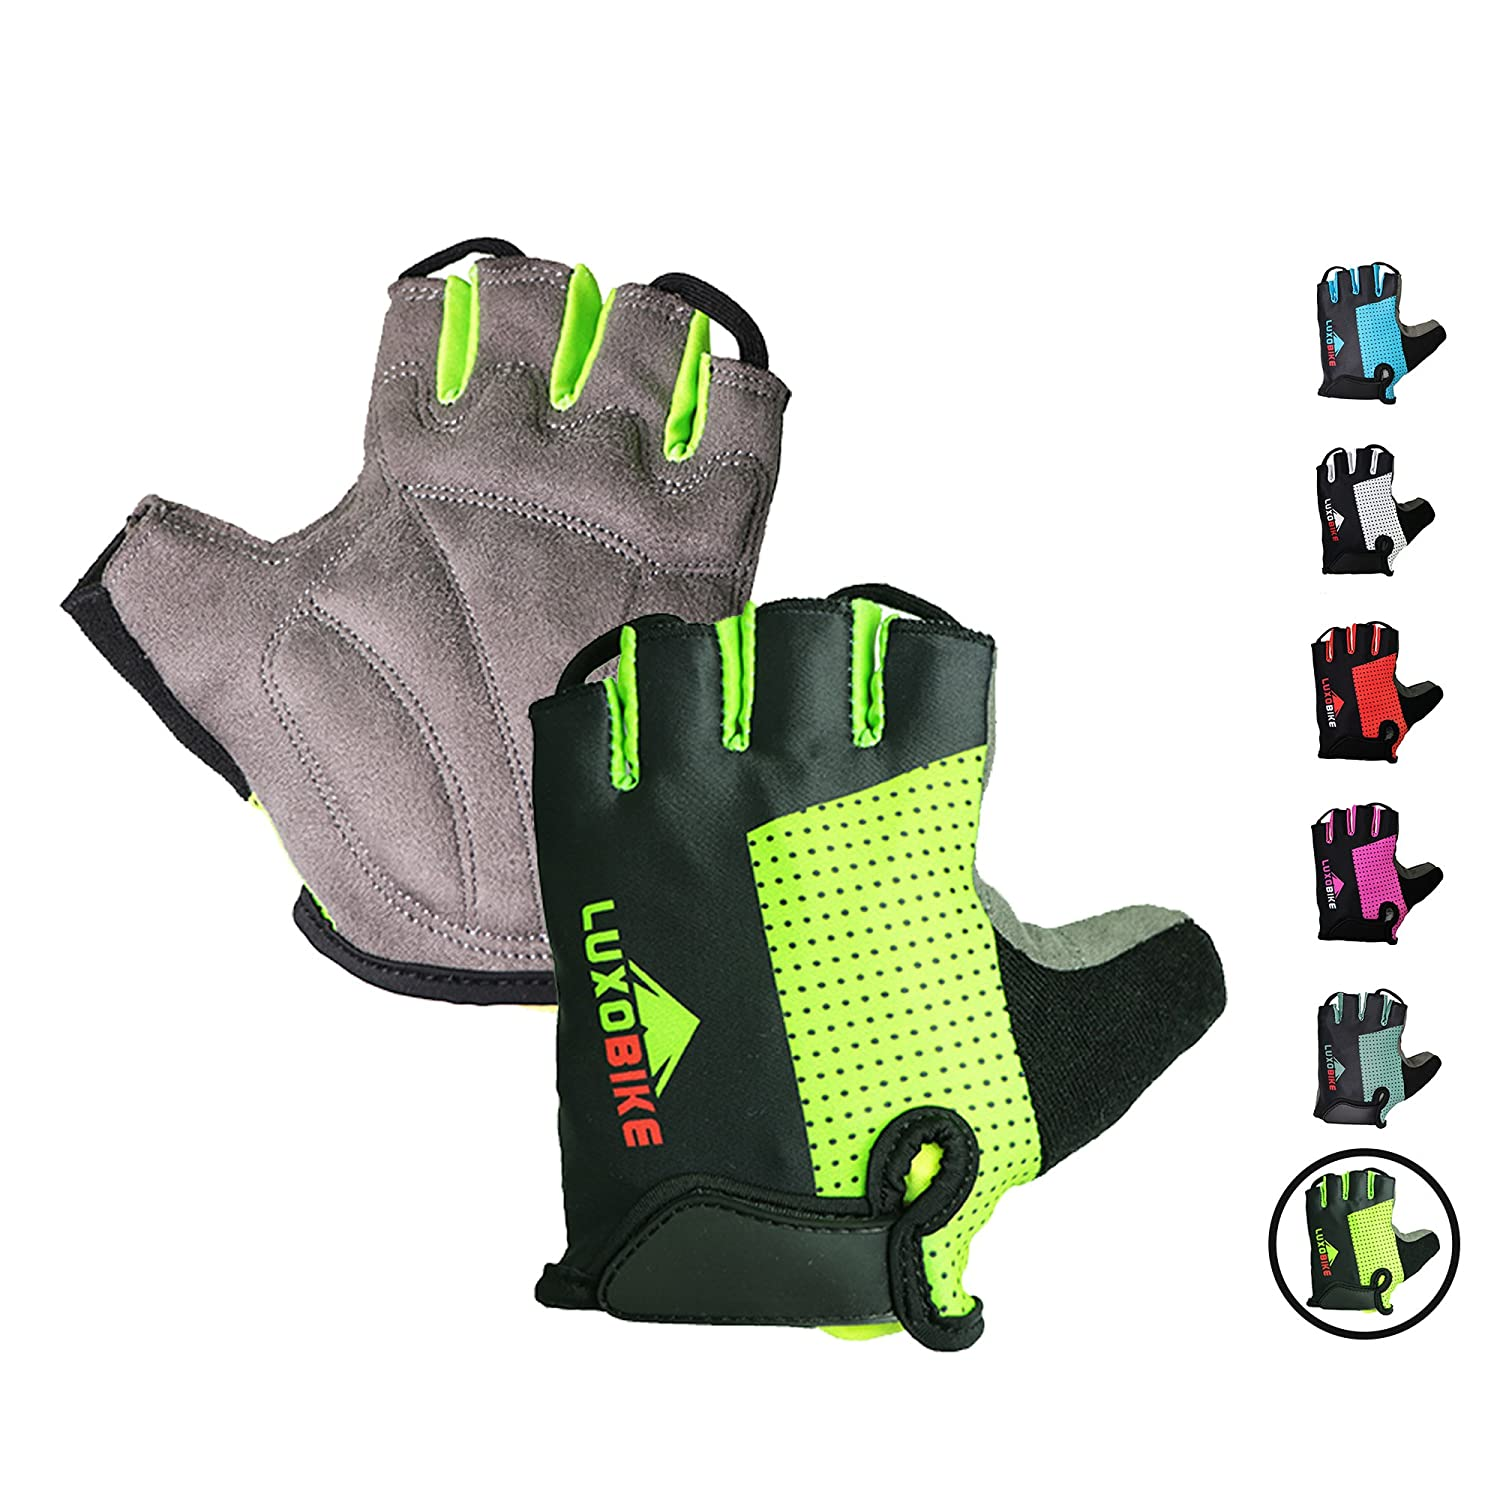 Anti Slip Shock Absorbing Padded Breathable Half Finger Short Sports Gloves Accessories for Men//Women LuxoBike Cycling Gloves Bicycle Gloves Bicycling Gloves Mountain Bike Gloves